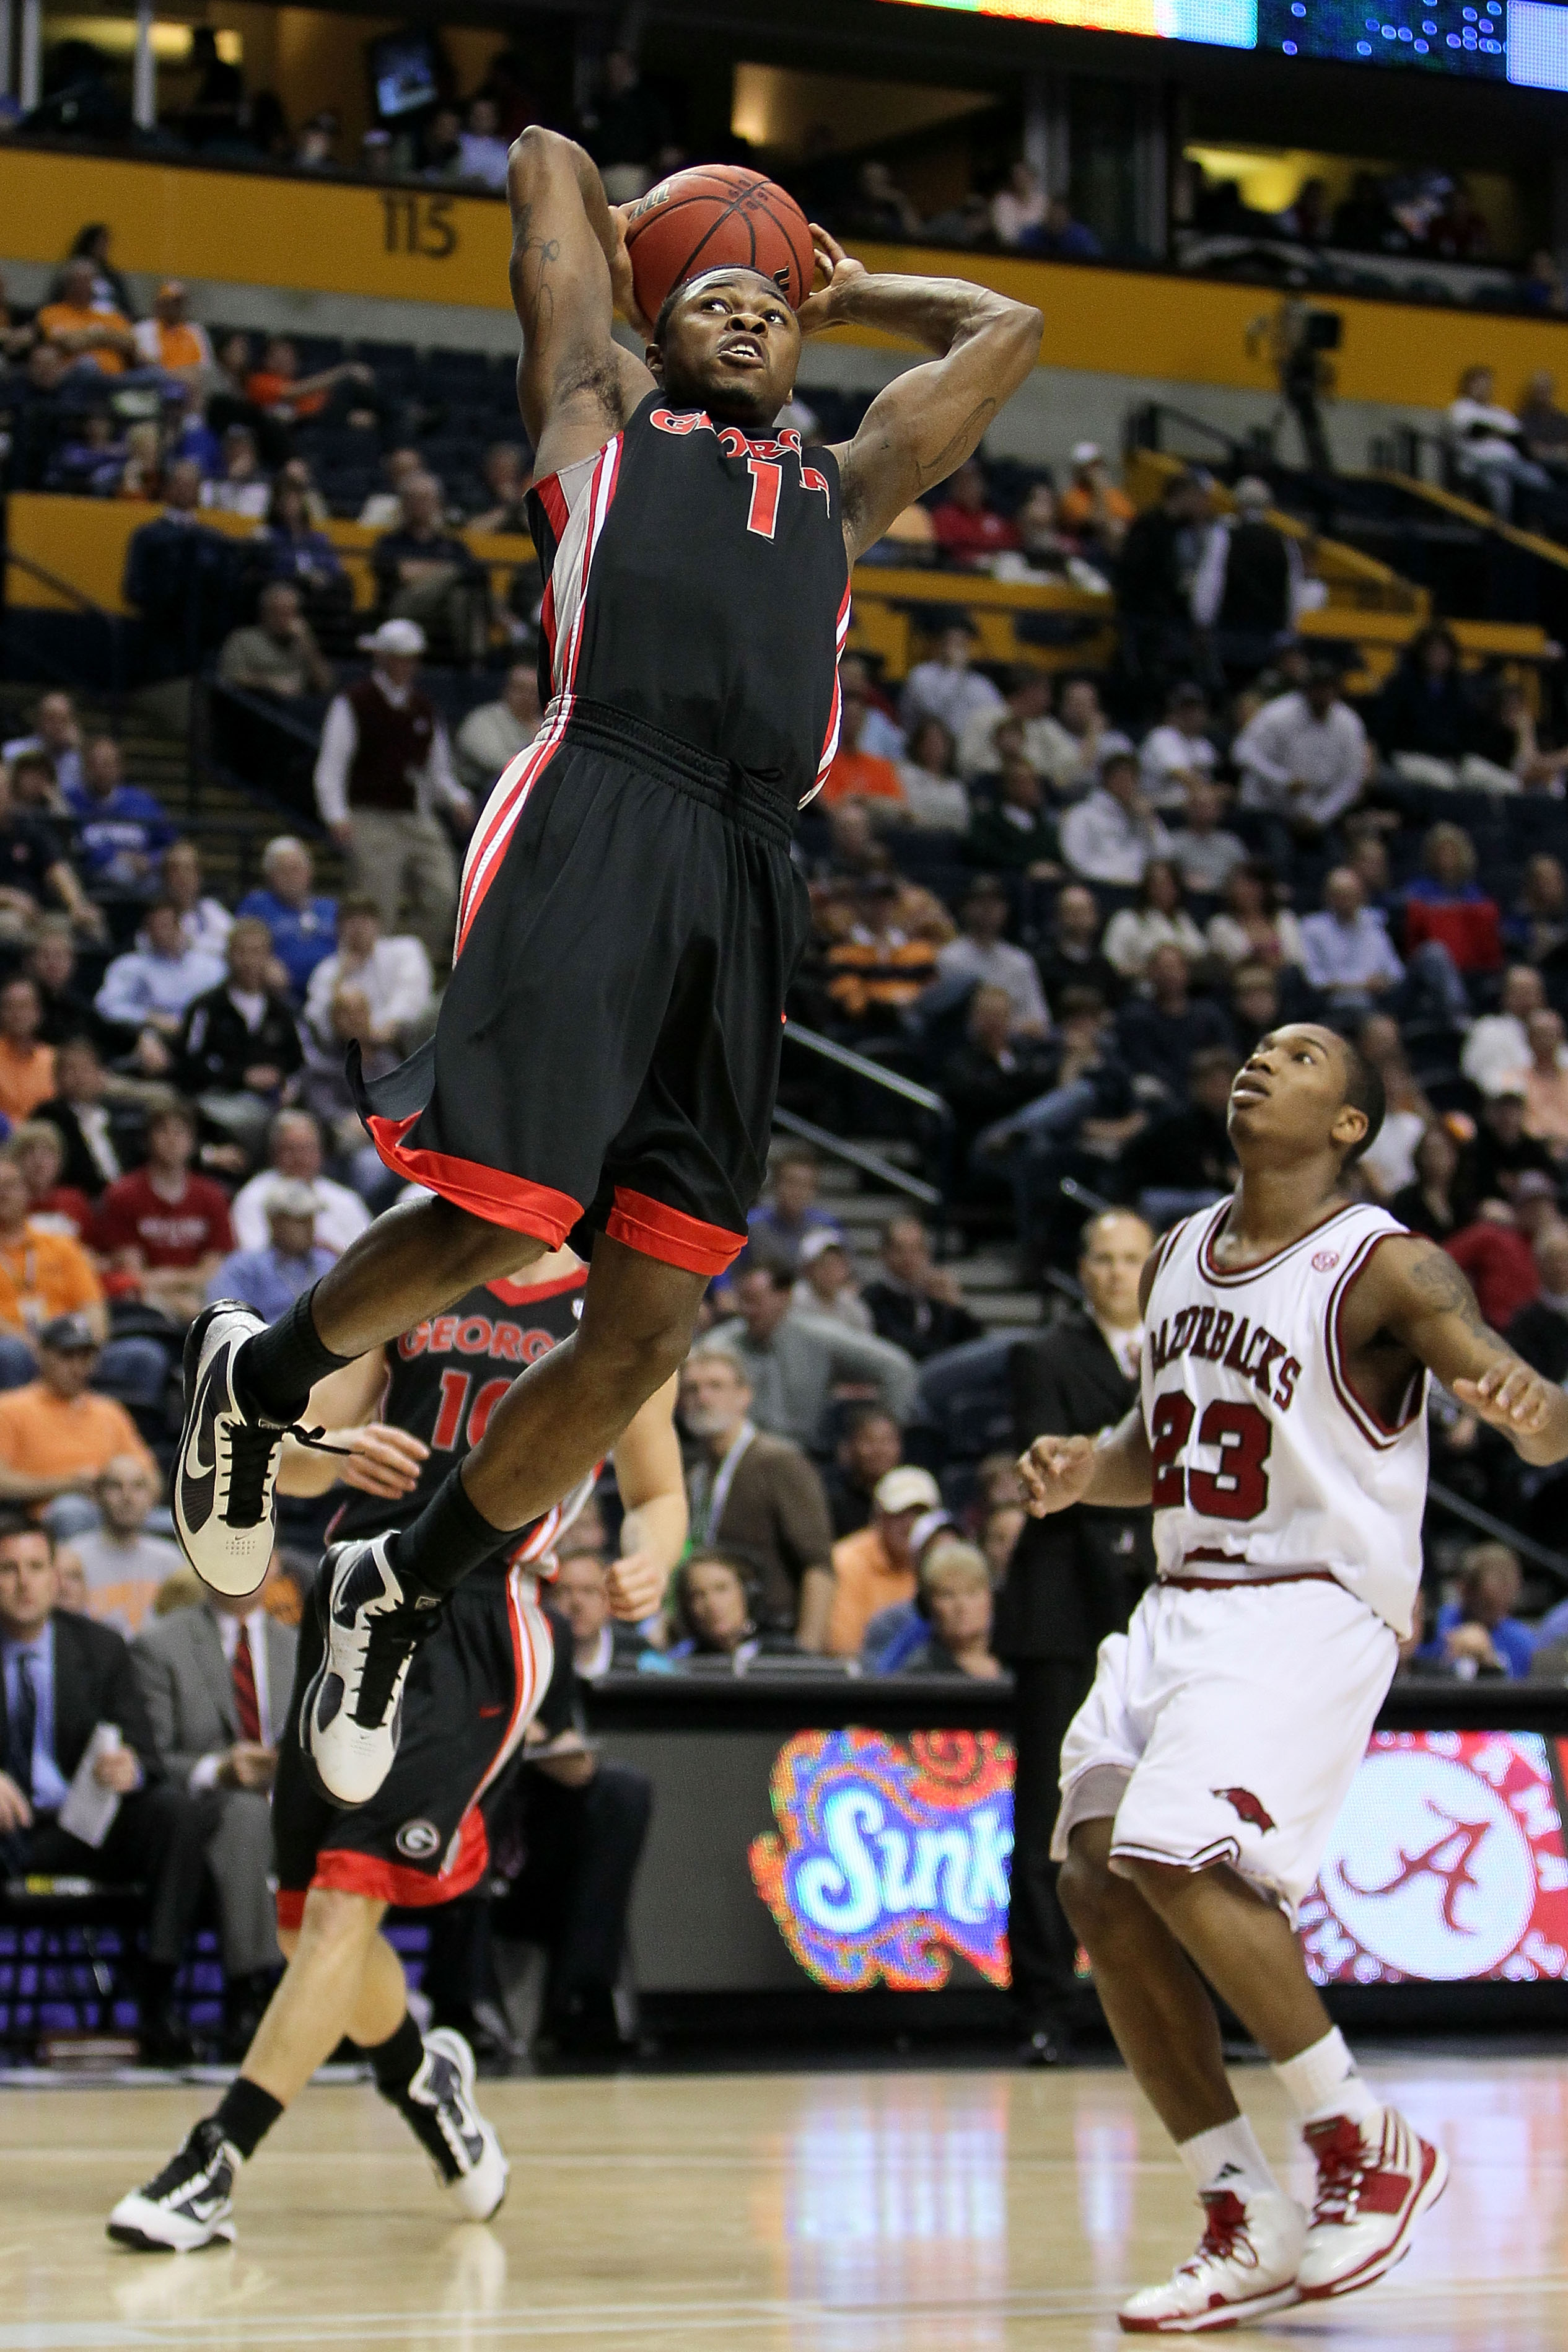 NASHVILLE, TN - MARCH 11:  Travis Leslie #1 of the Georgia Bulldogs goes up for a dunk attempt against Julysses Nobles #23 of the Arkanasas Razorbacks during the first round of the SEC Men's Basketball Tournament at the Bridgestone Arena on March 11, 2010